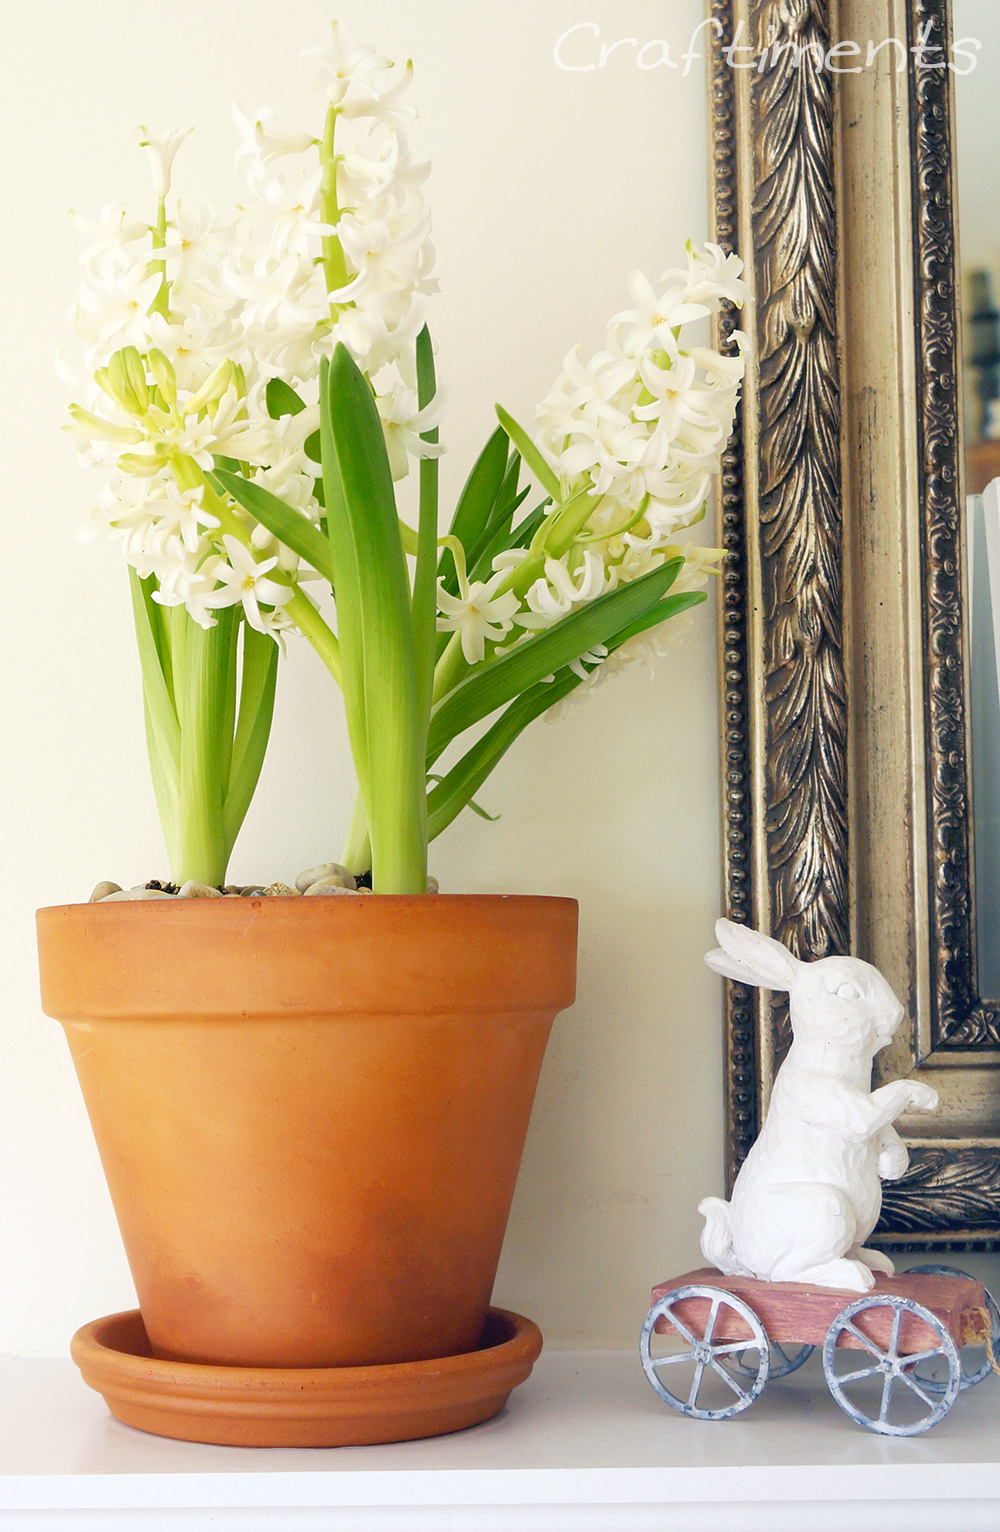 Flowering hyacinths in a terra cotta flowerpot displayed on a mantle